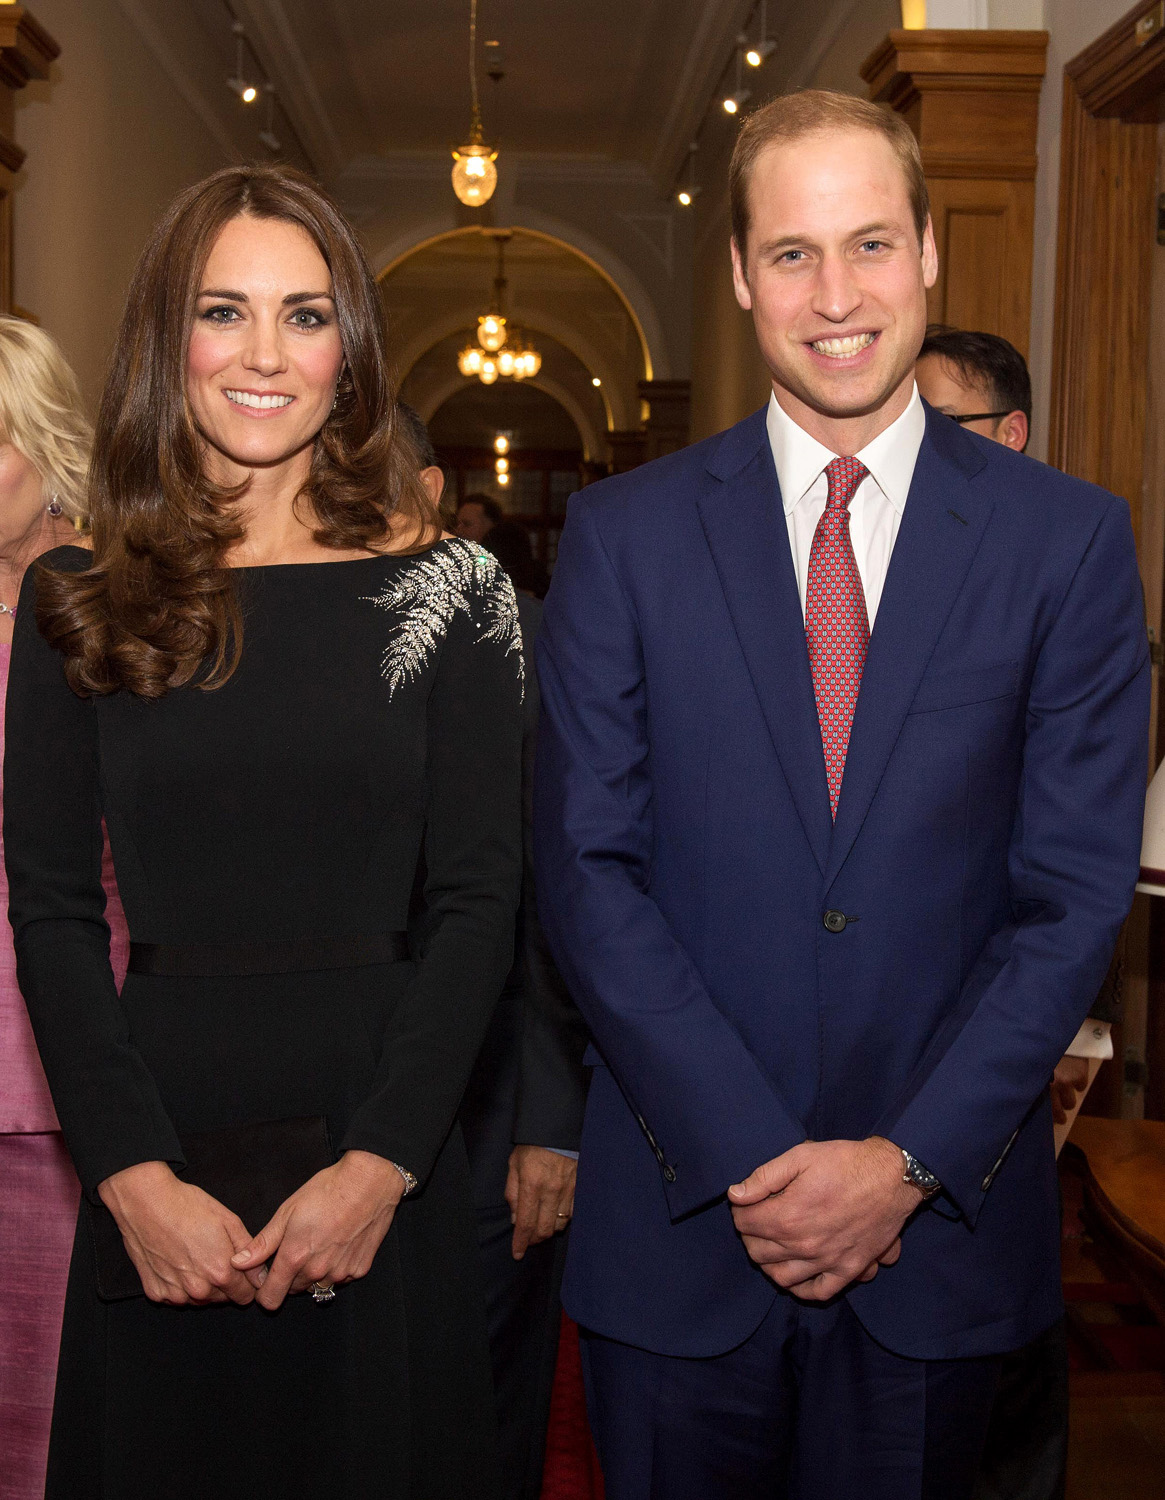 <strong>The Fern of New Zealand</strong>Catherine, Duchess of Cambridge and Prince William, Duke of Cambridge pose together at the unveiling a portrait of Queen Elizabeth II, painted by New Zealand artist Nick Cuthell at a state reception at Government House on April 10, 2014 in Wellington, New Zealand.